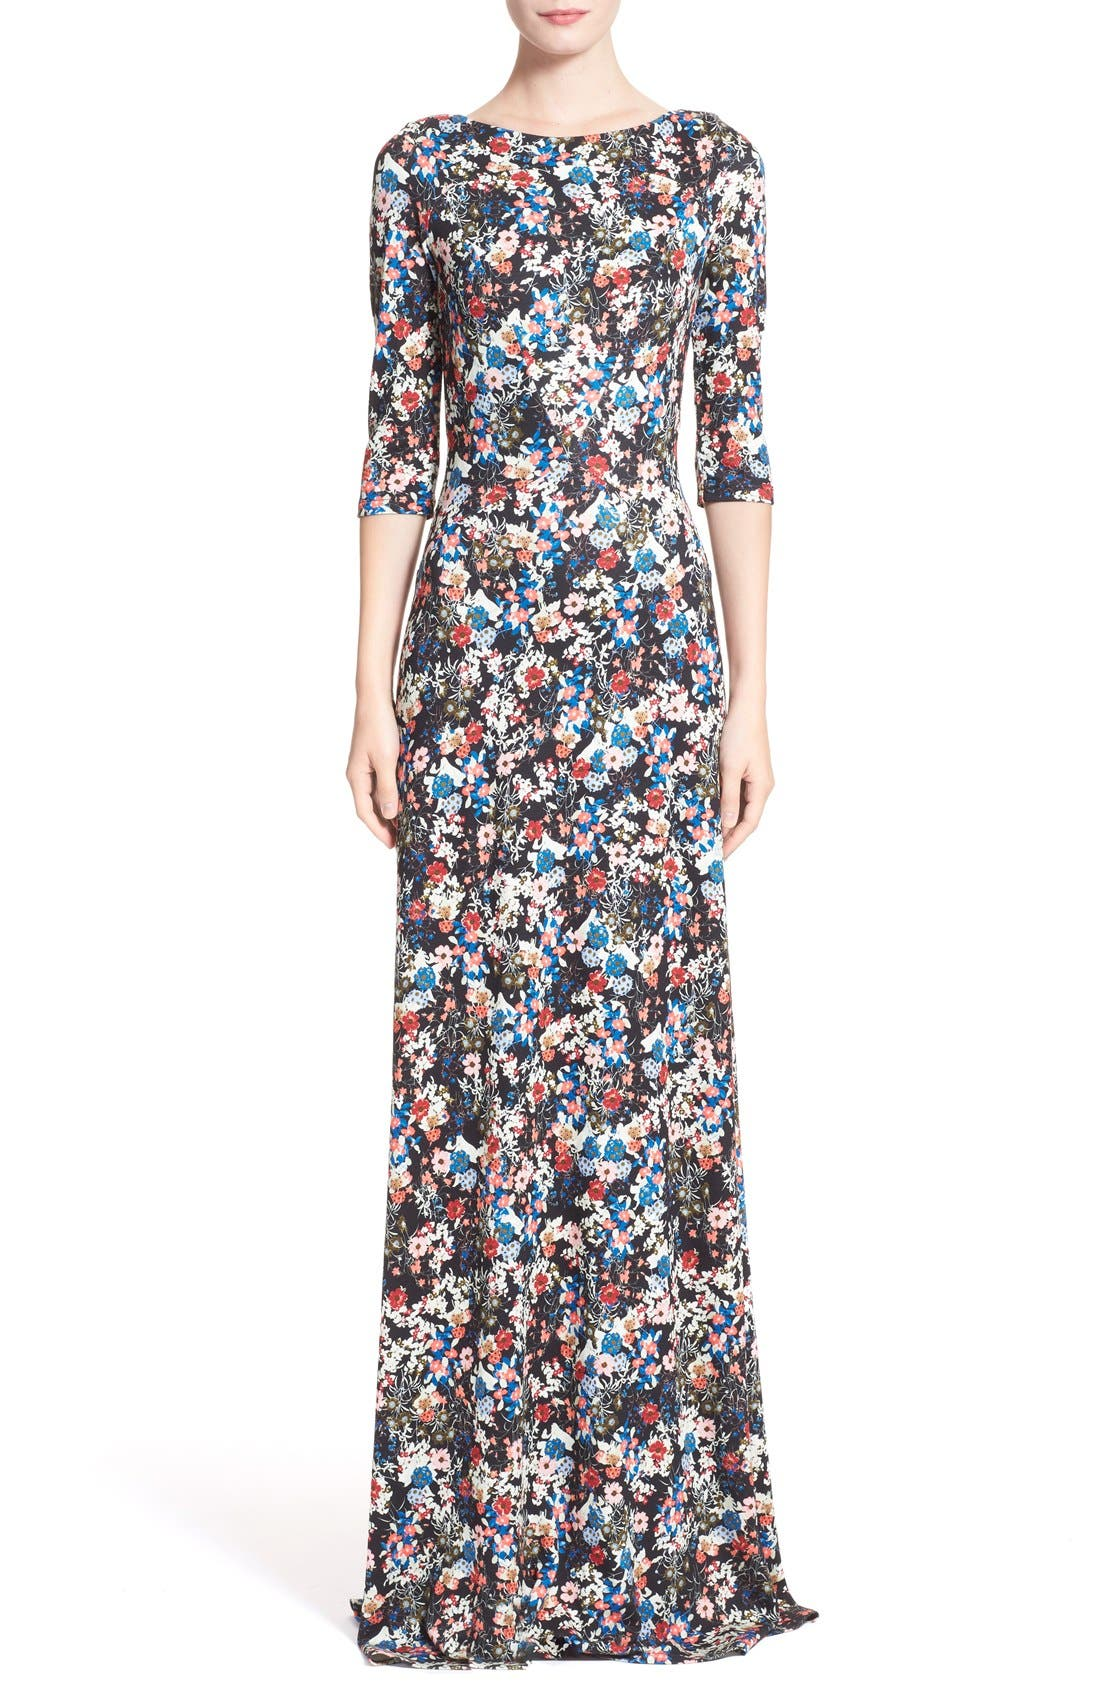 'Valentina' Floral Print JerseyGown,                             Main thumbnail 1, color,                             Pink/ Multi